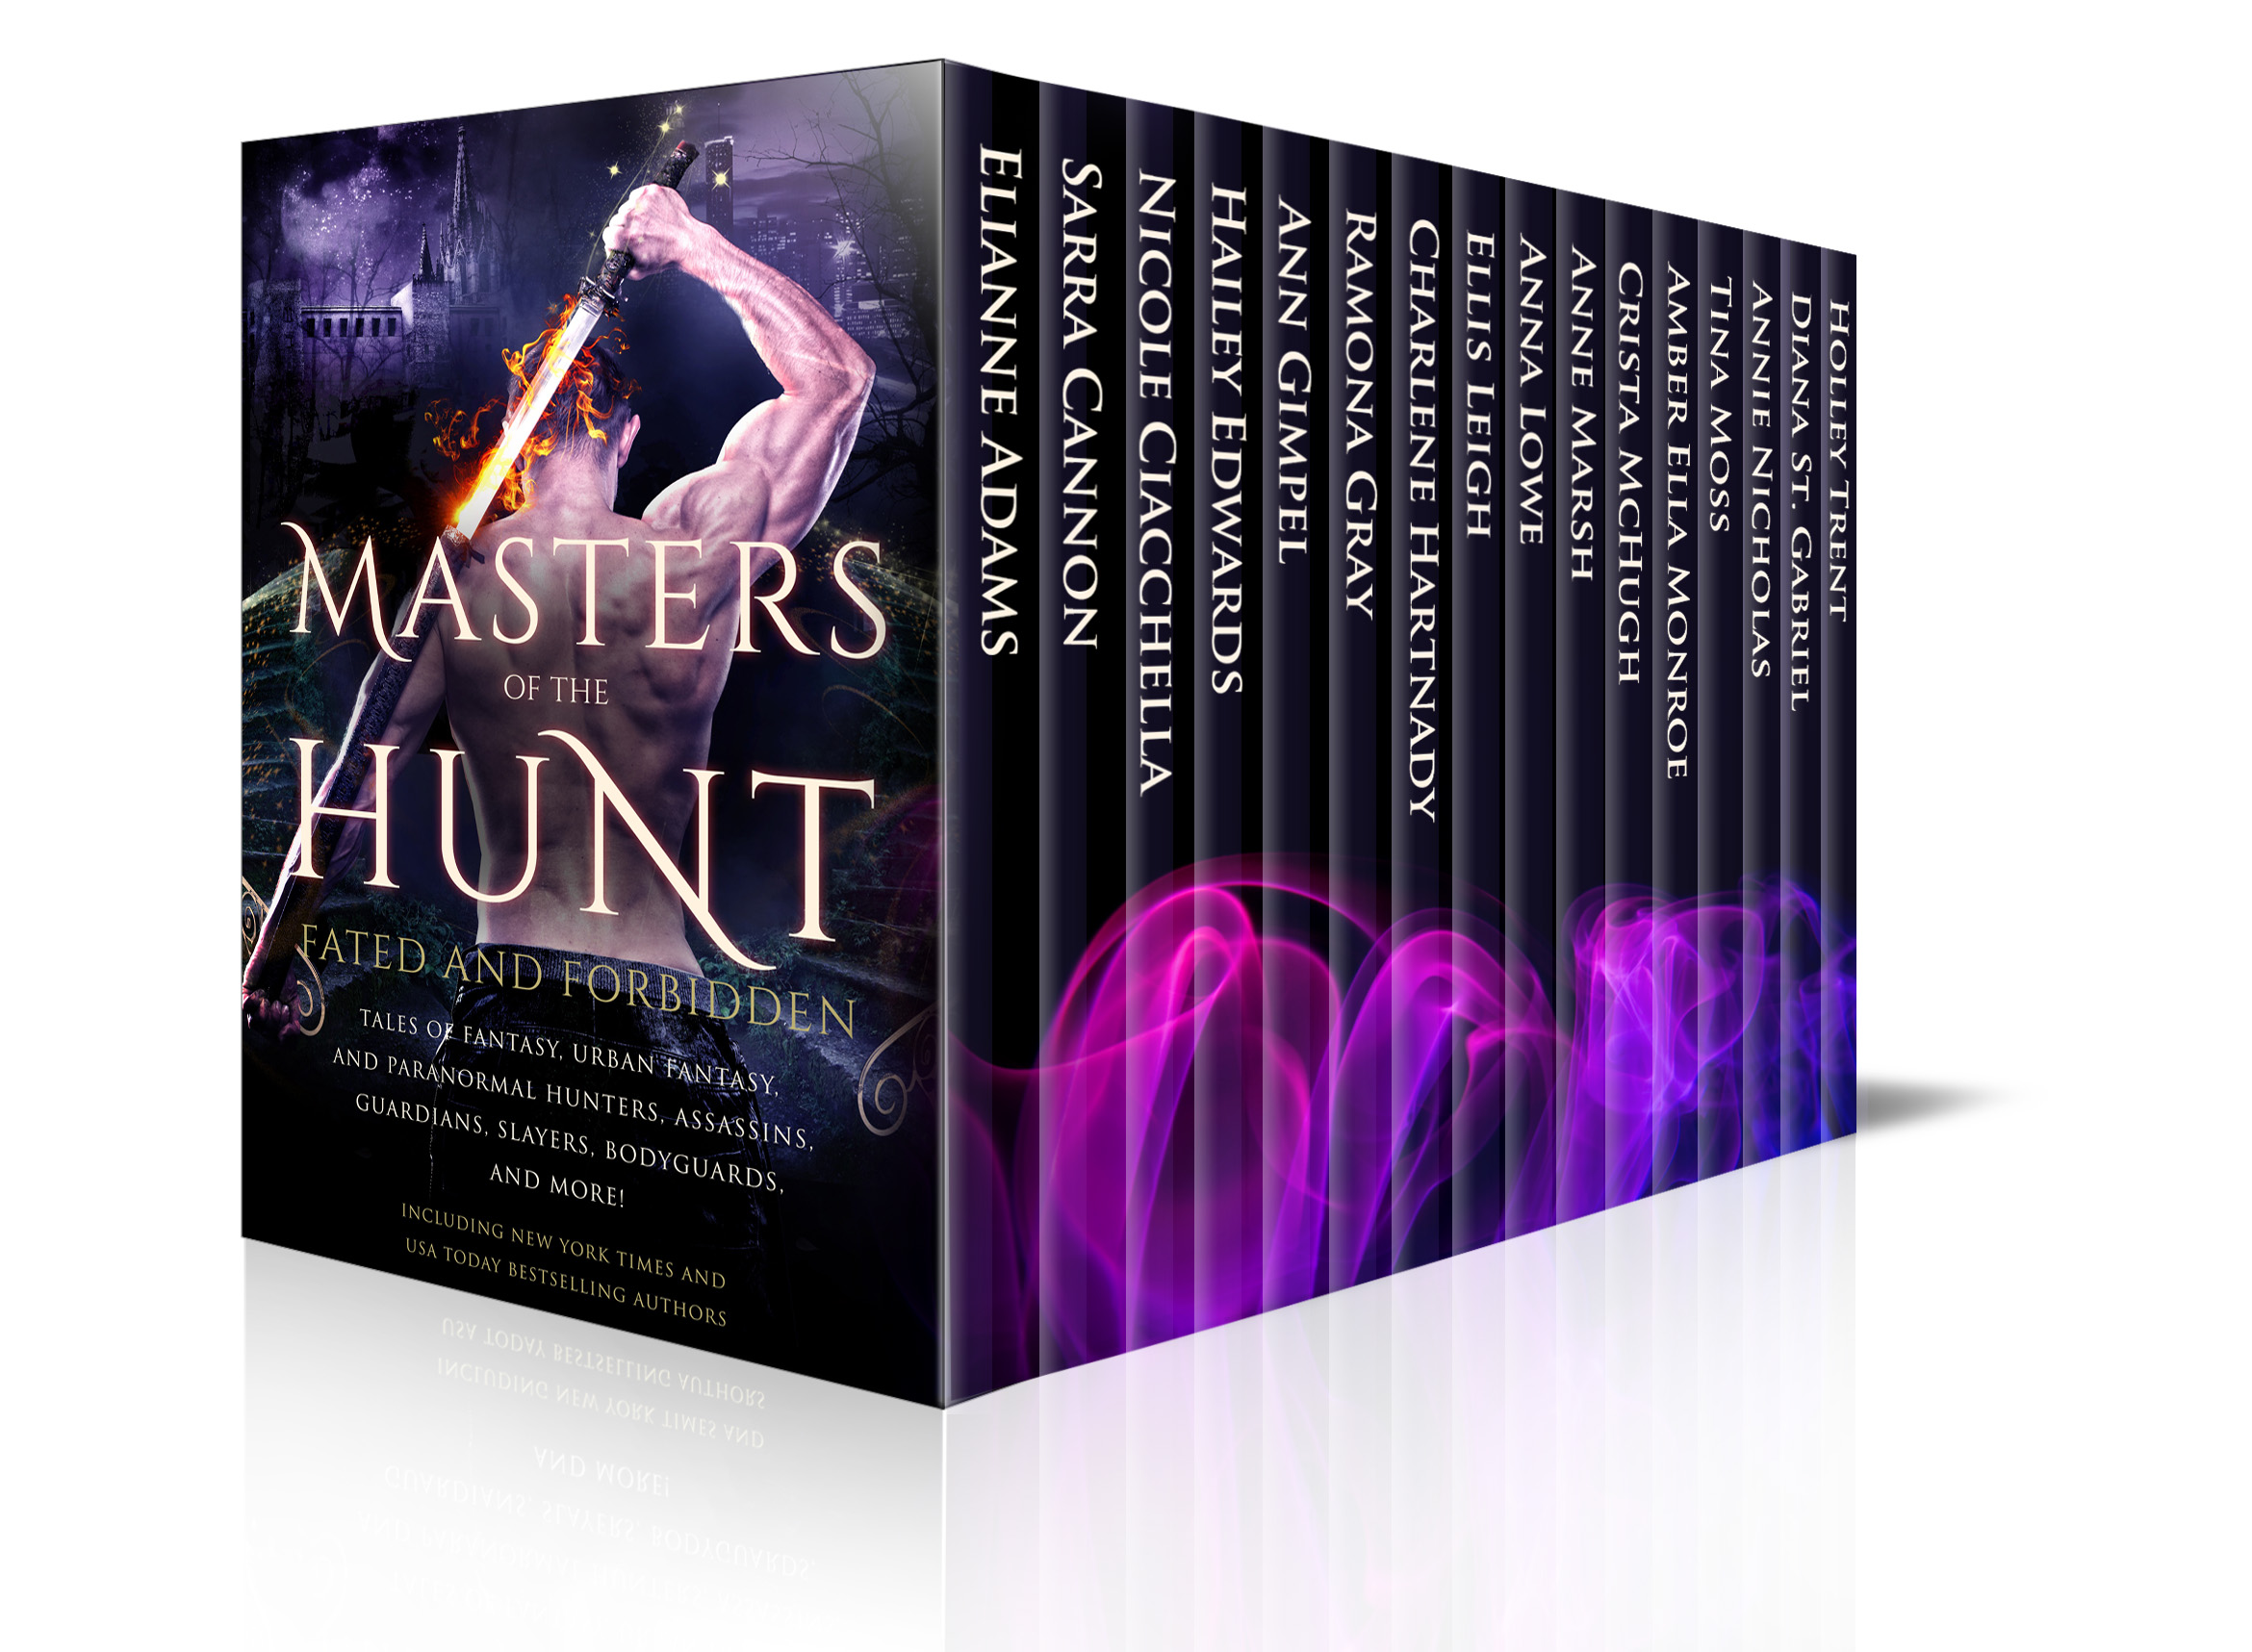 masters-of-the-hunt-paranormal-box-set-design